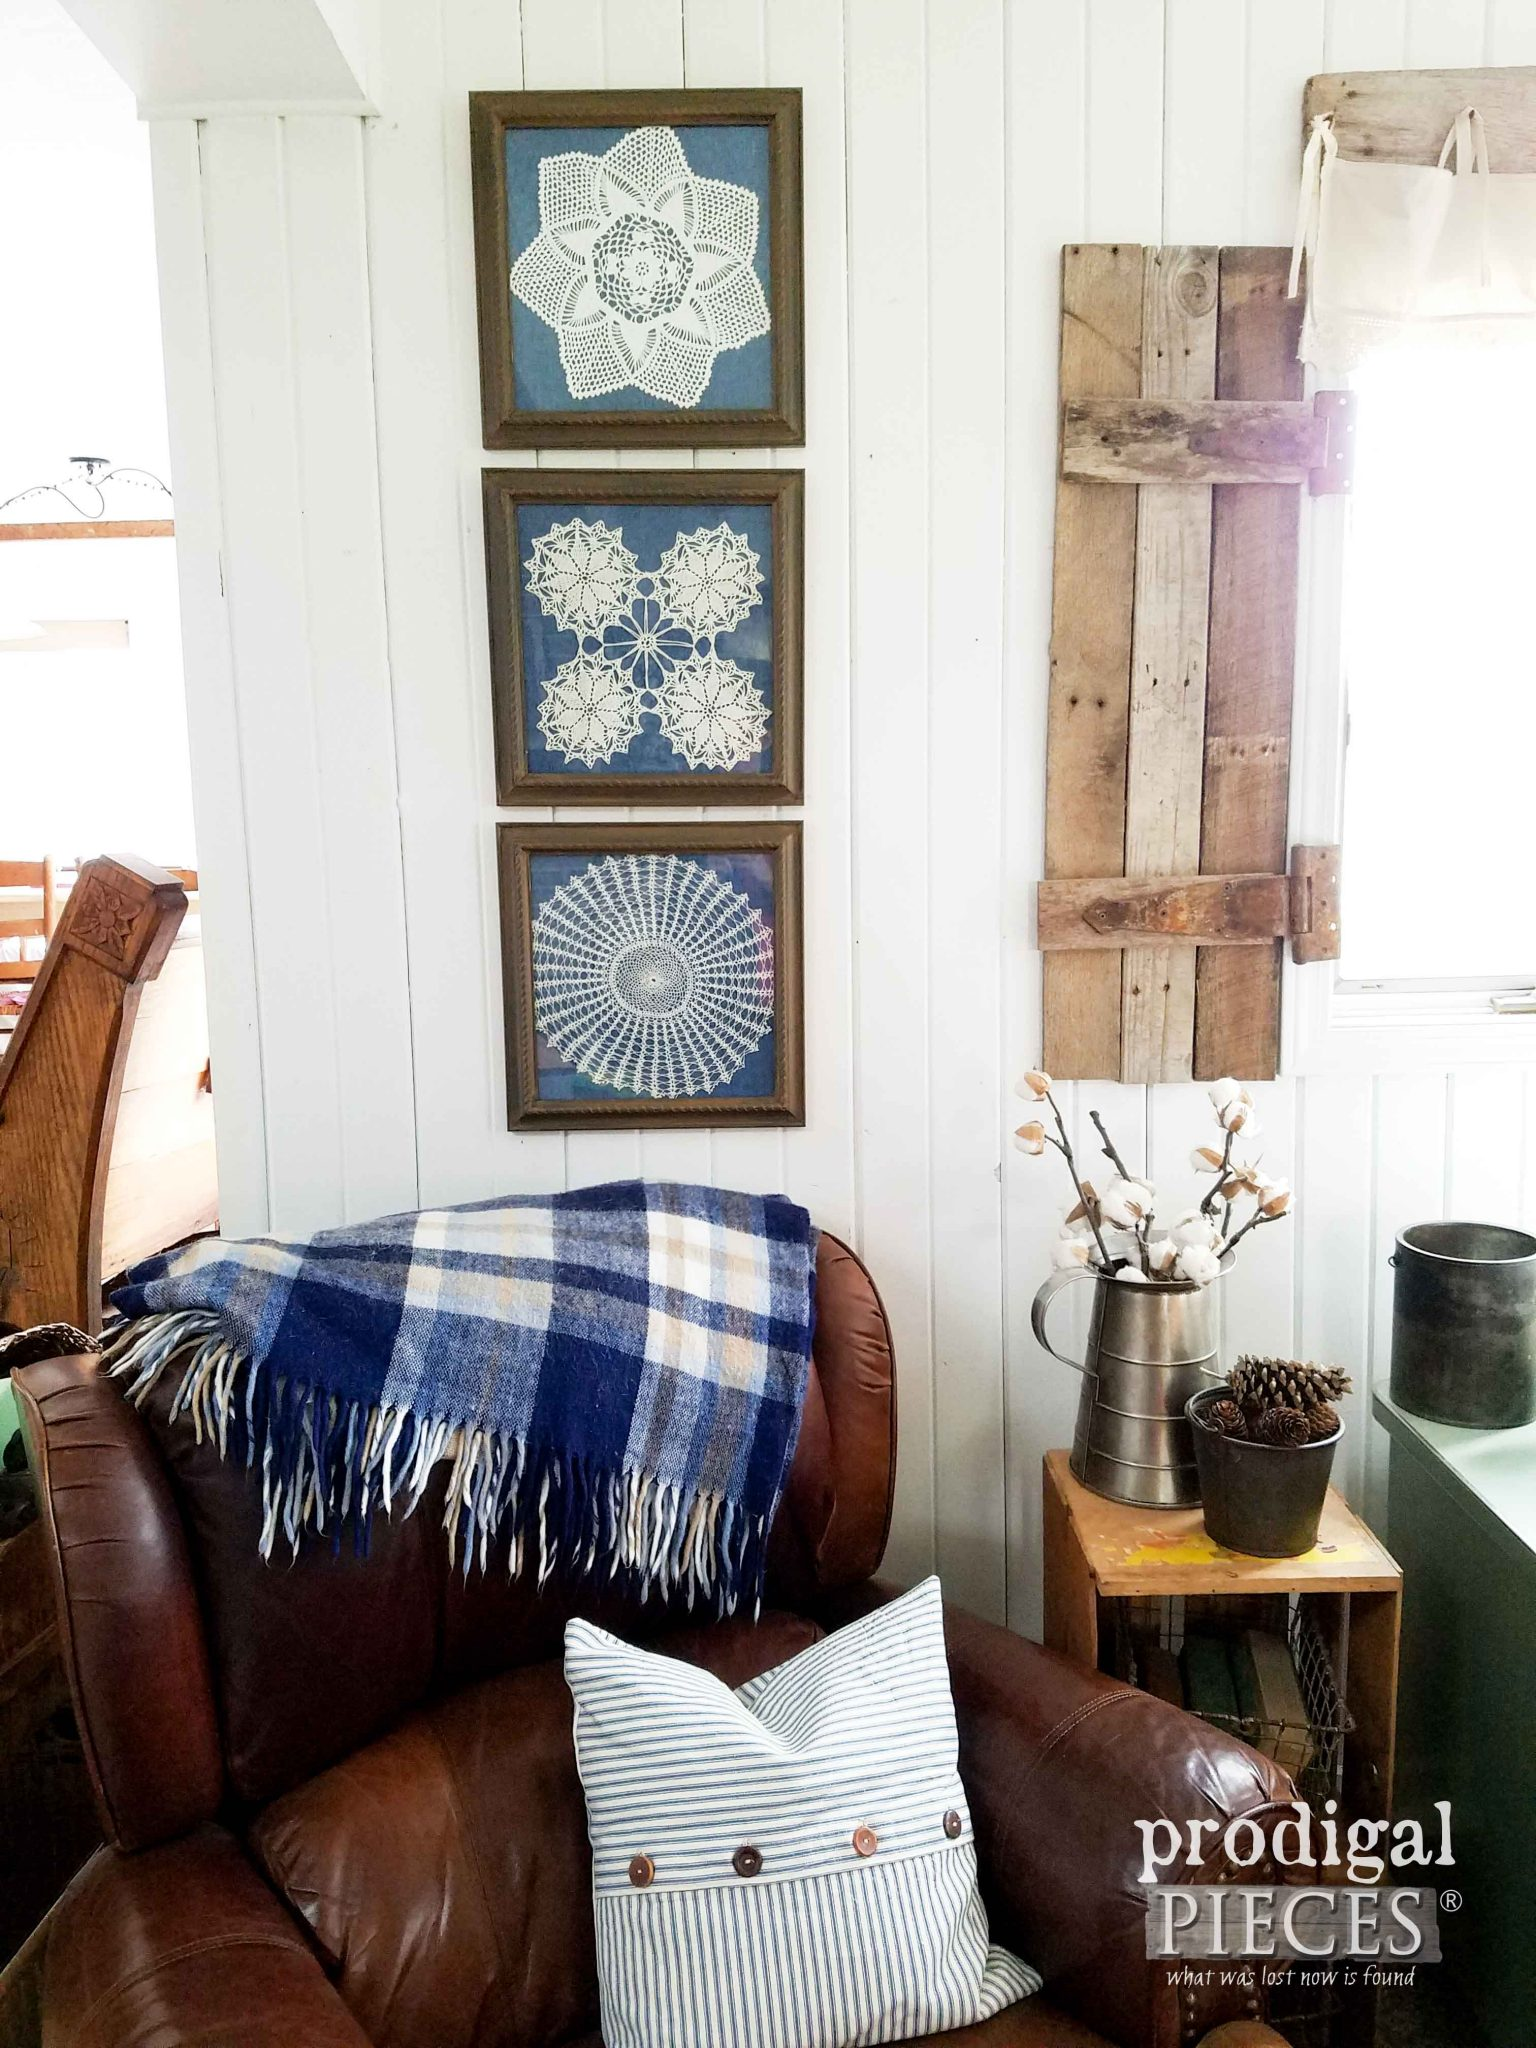 Framed Doily Wall Art from Curbside Finds by Prodigal Pieces | prodigalpieces.com